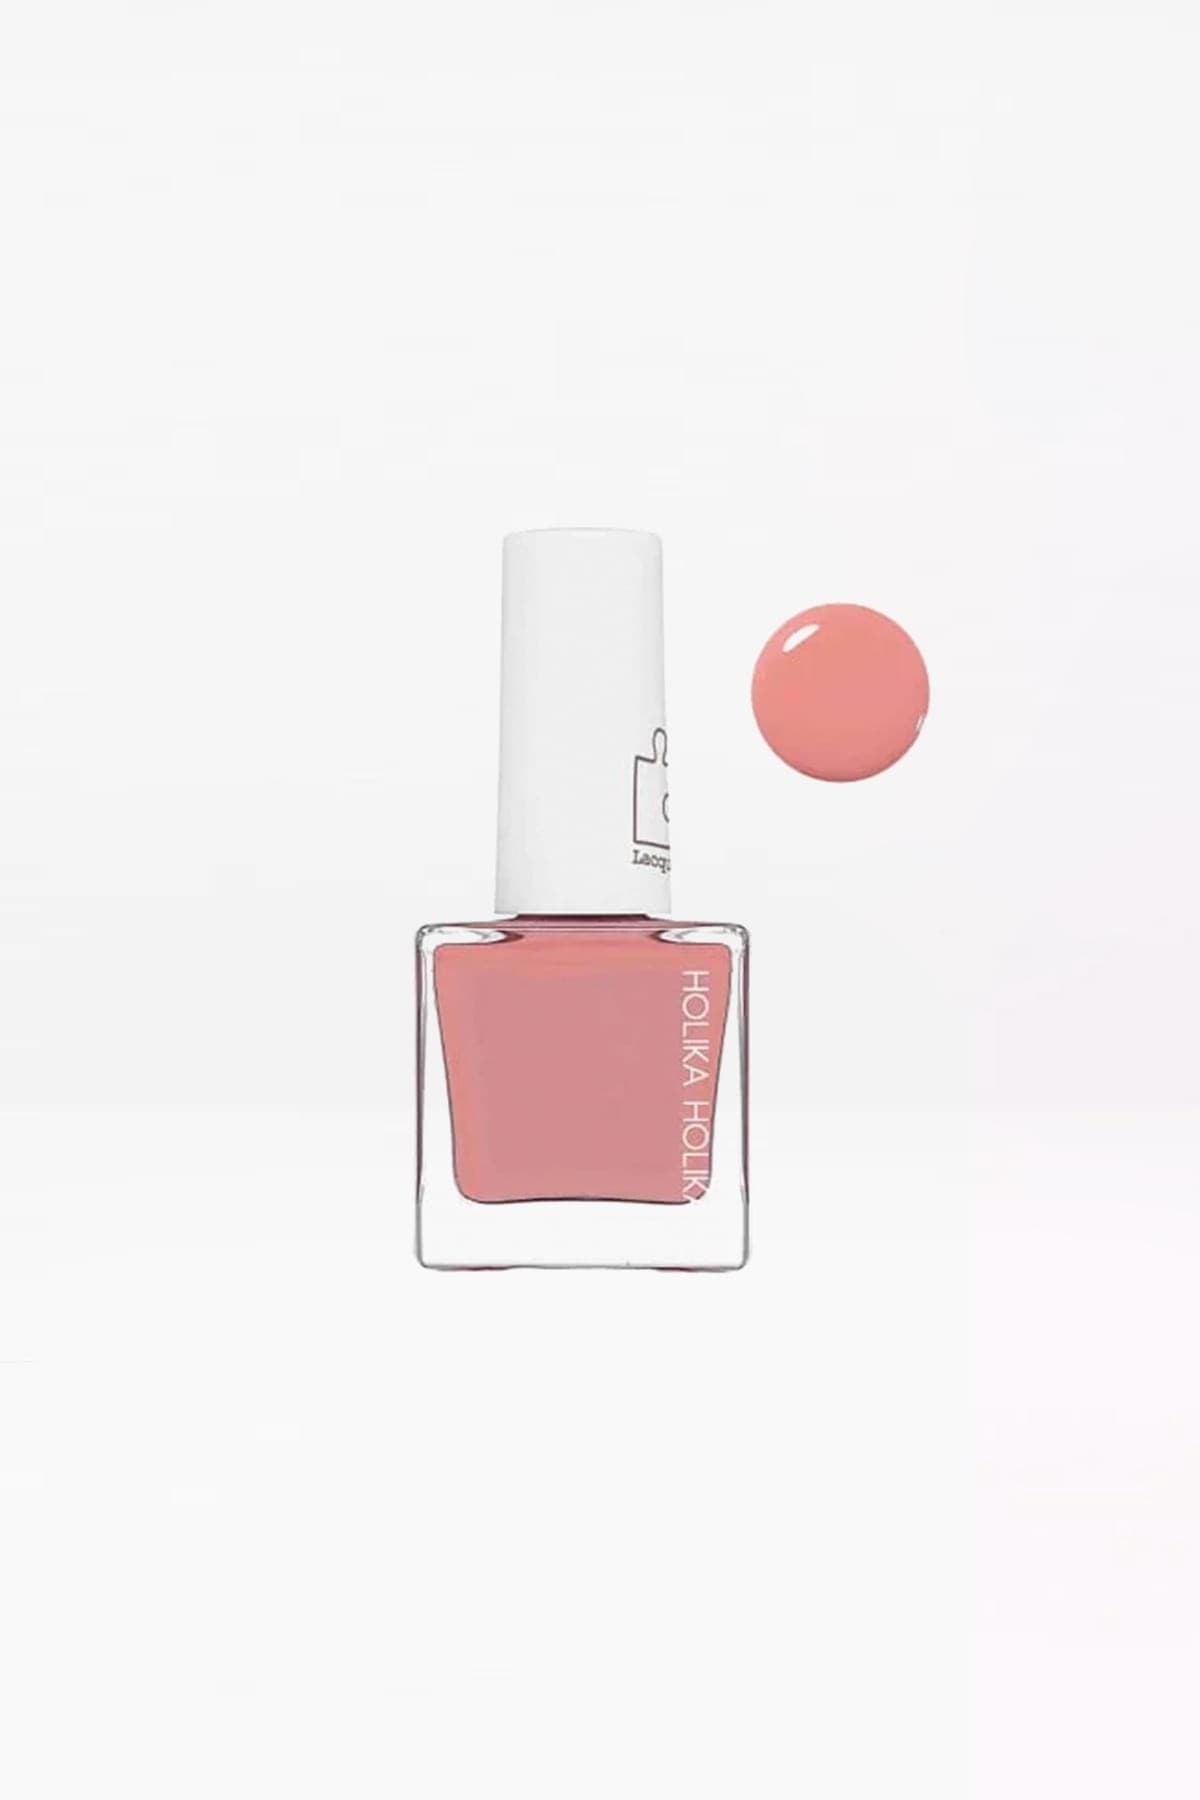 Piece Matching Nails Lacquer Skin Pink T 10ml